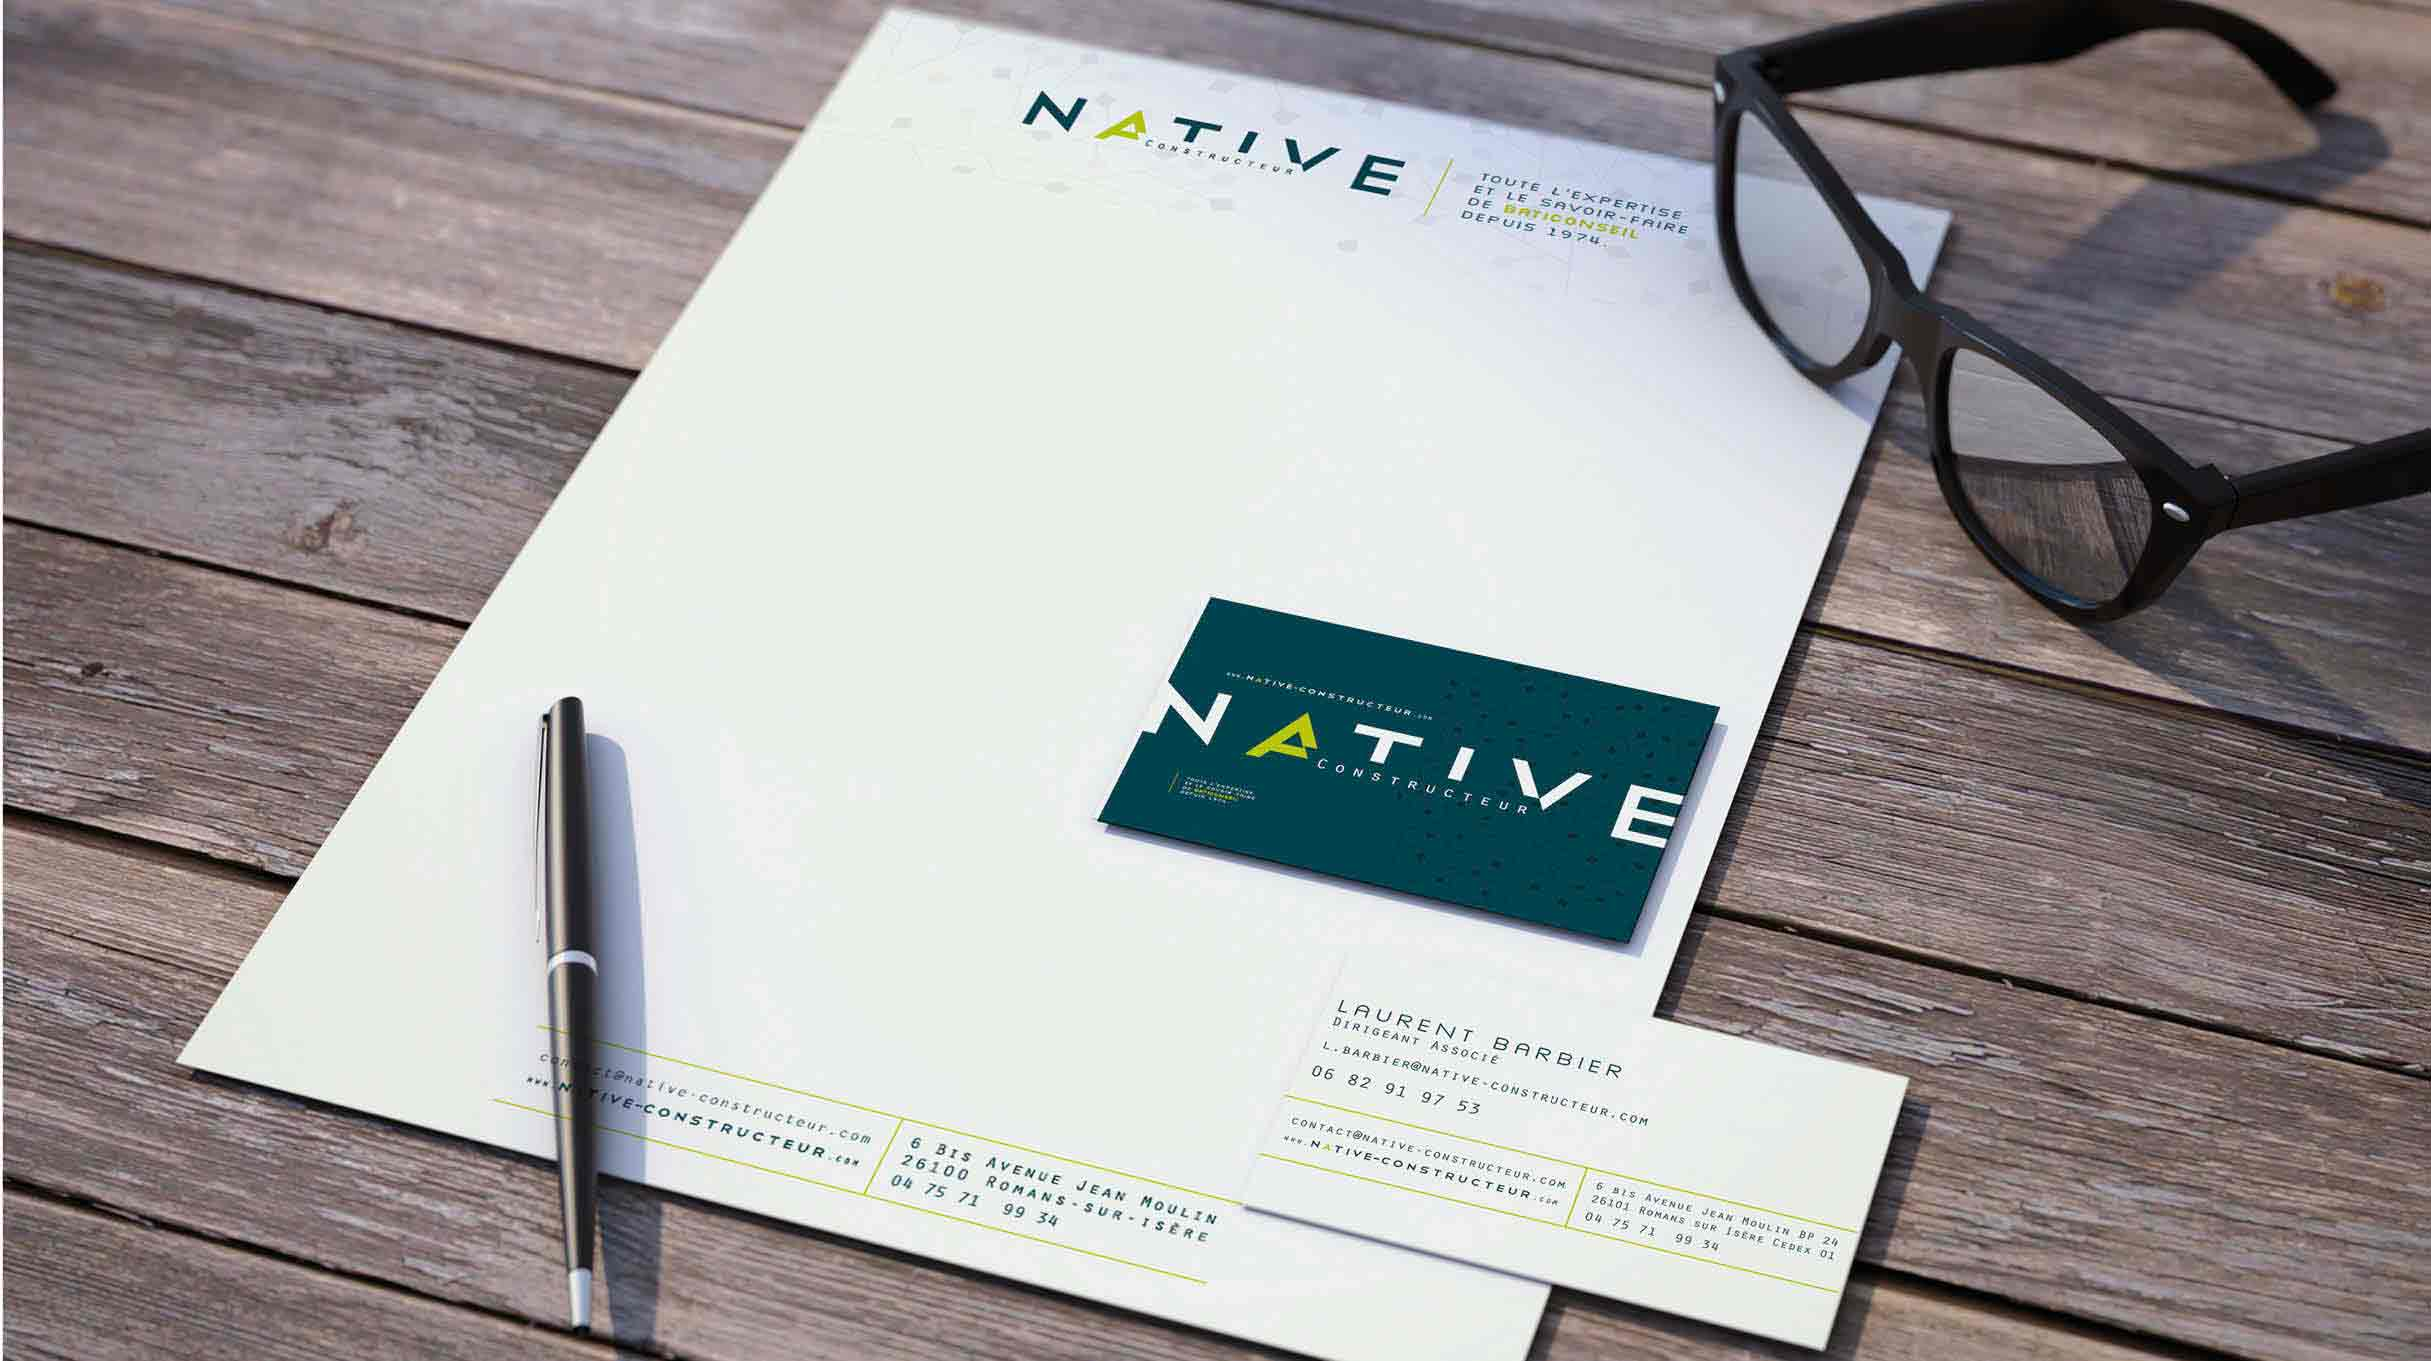 Reference4-native